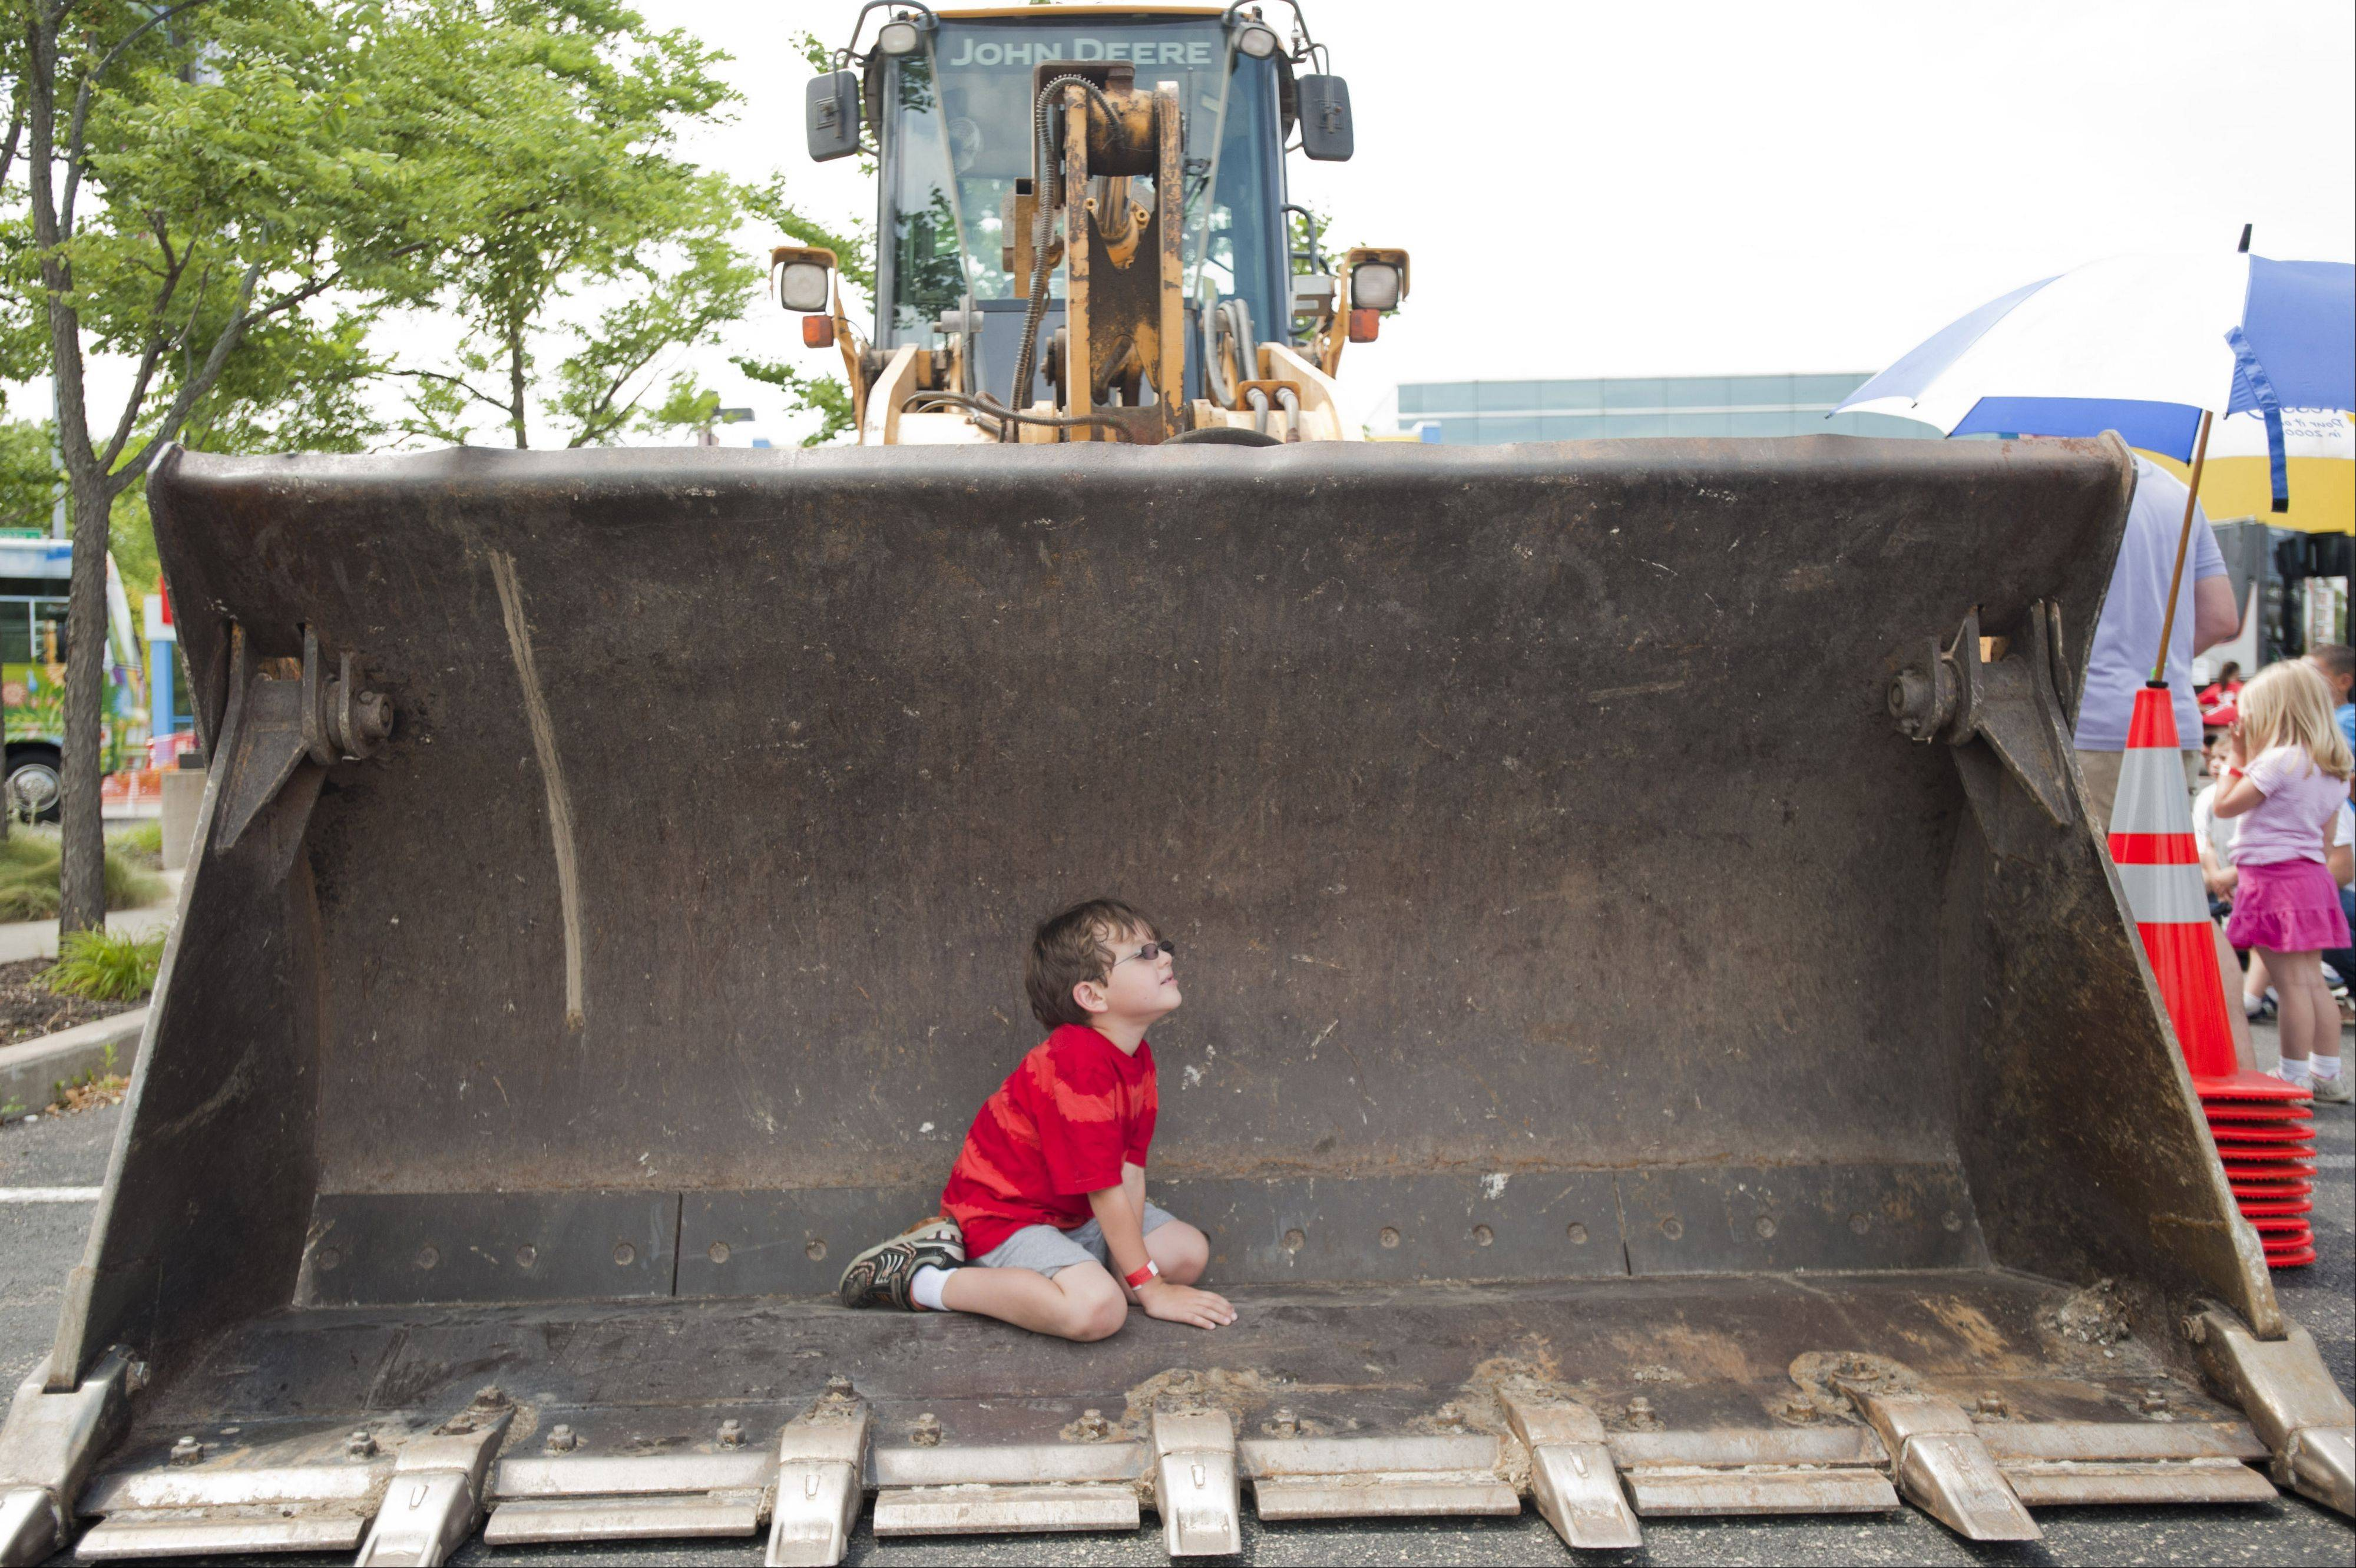 Malcolm Hoering, 6, gets a close look at various trucks while at the DuPage Children's Museum's 25th anniversary celebration on Sunday.